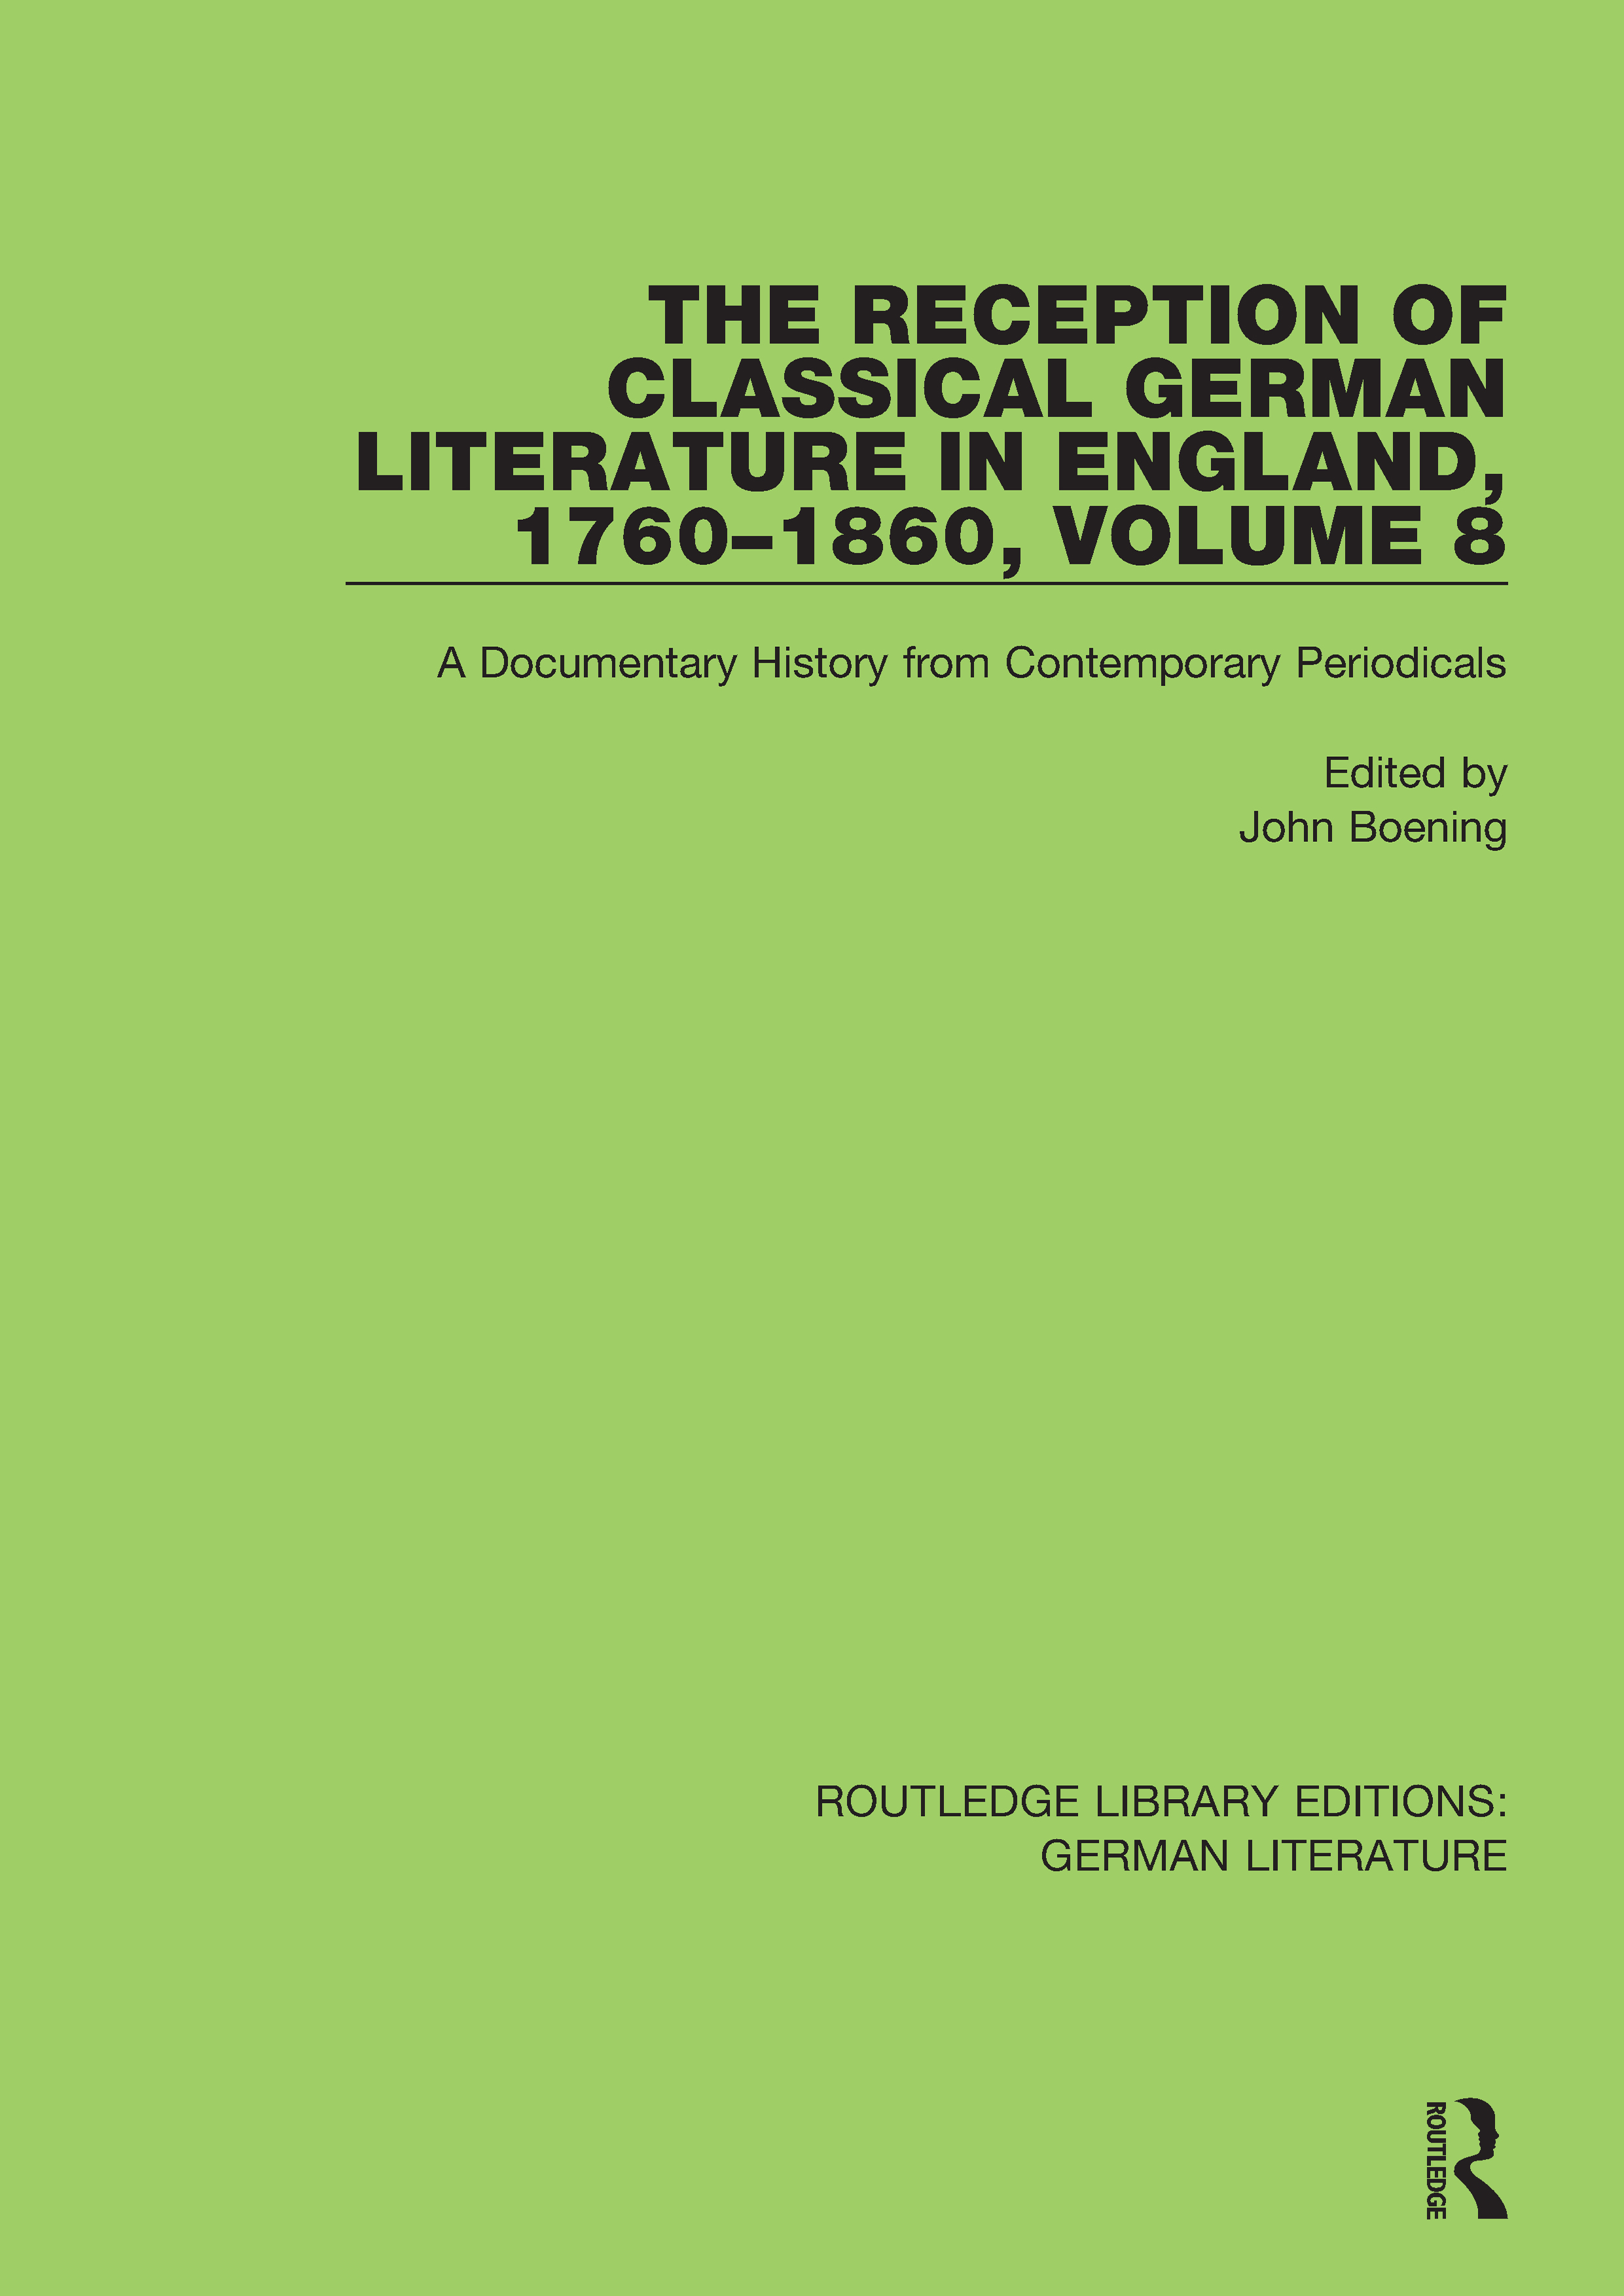 The Reception of Classical German Literature in England, 1760-1860, Volume 8: A Documentary History from Contemporary Periodicals book cover